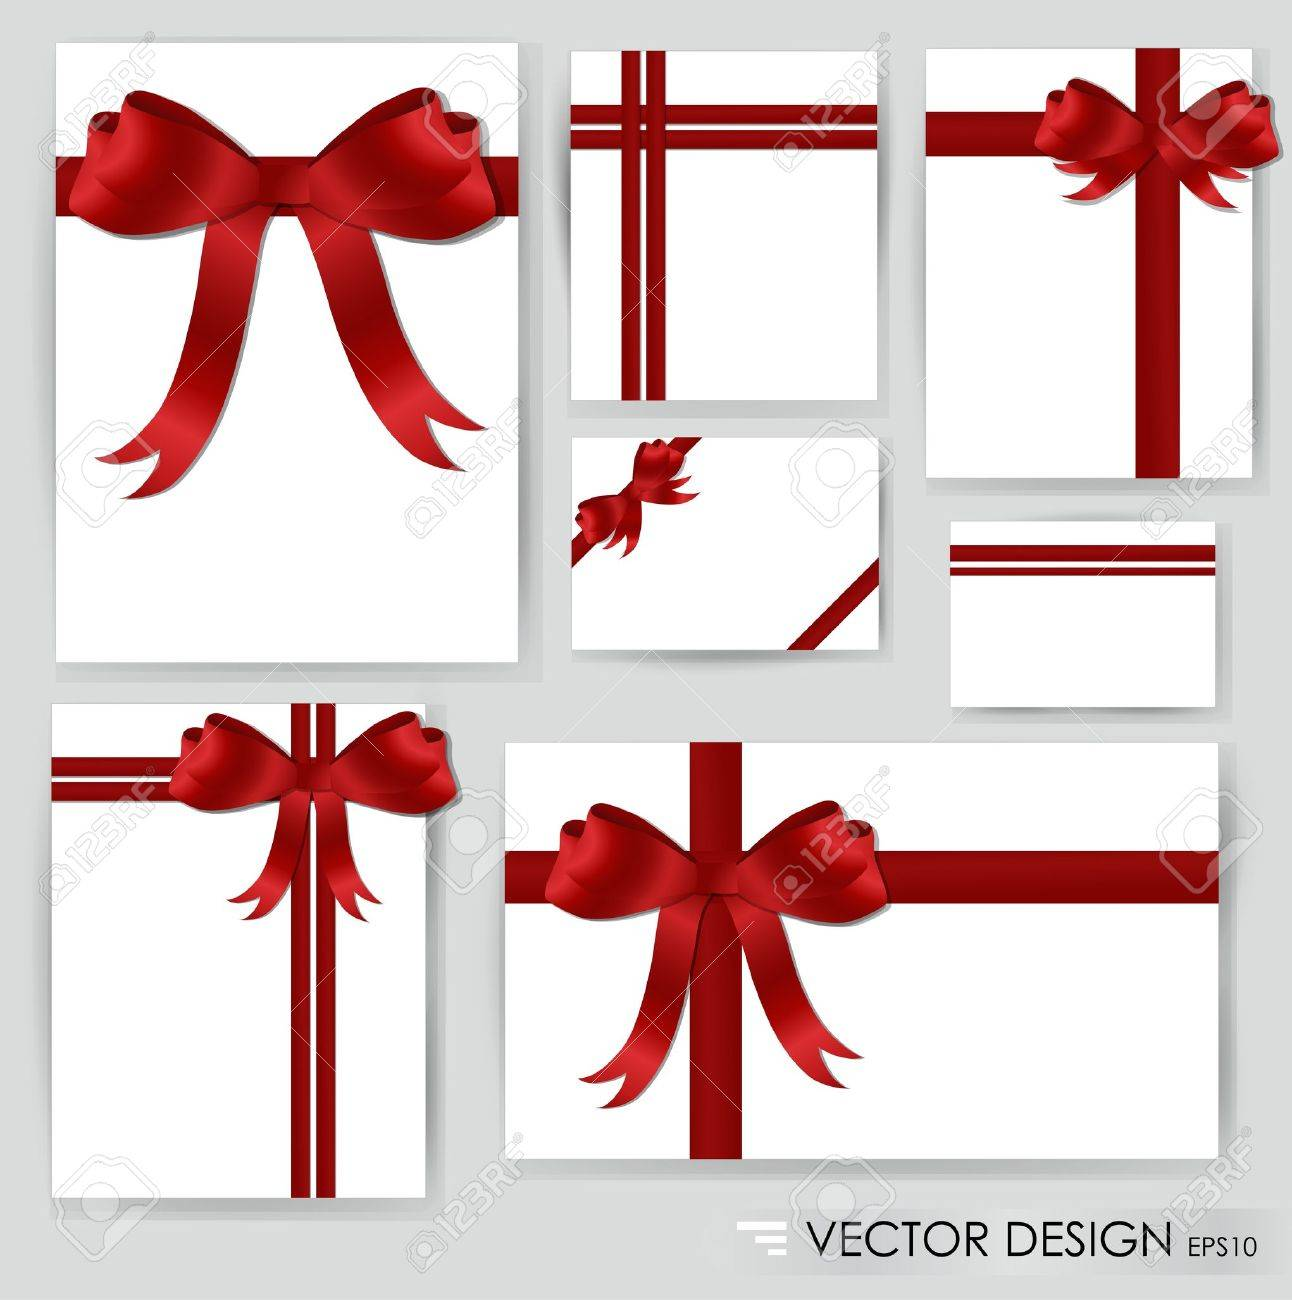 Big set of red gift bows with ribbons illustration royalty free big set of red gift bows with ribbons illustration stock vector 14850616 negle Gallery